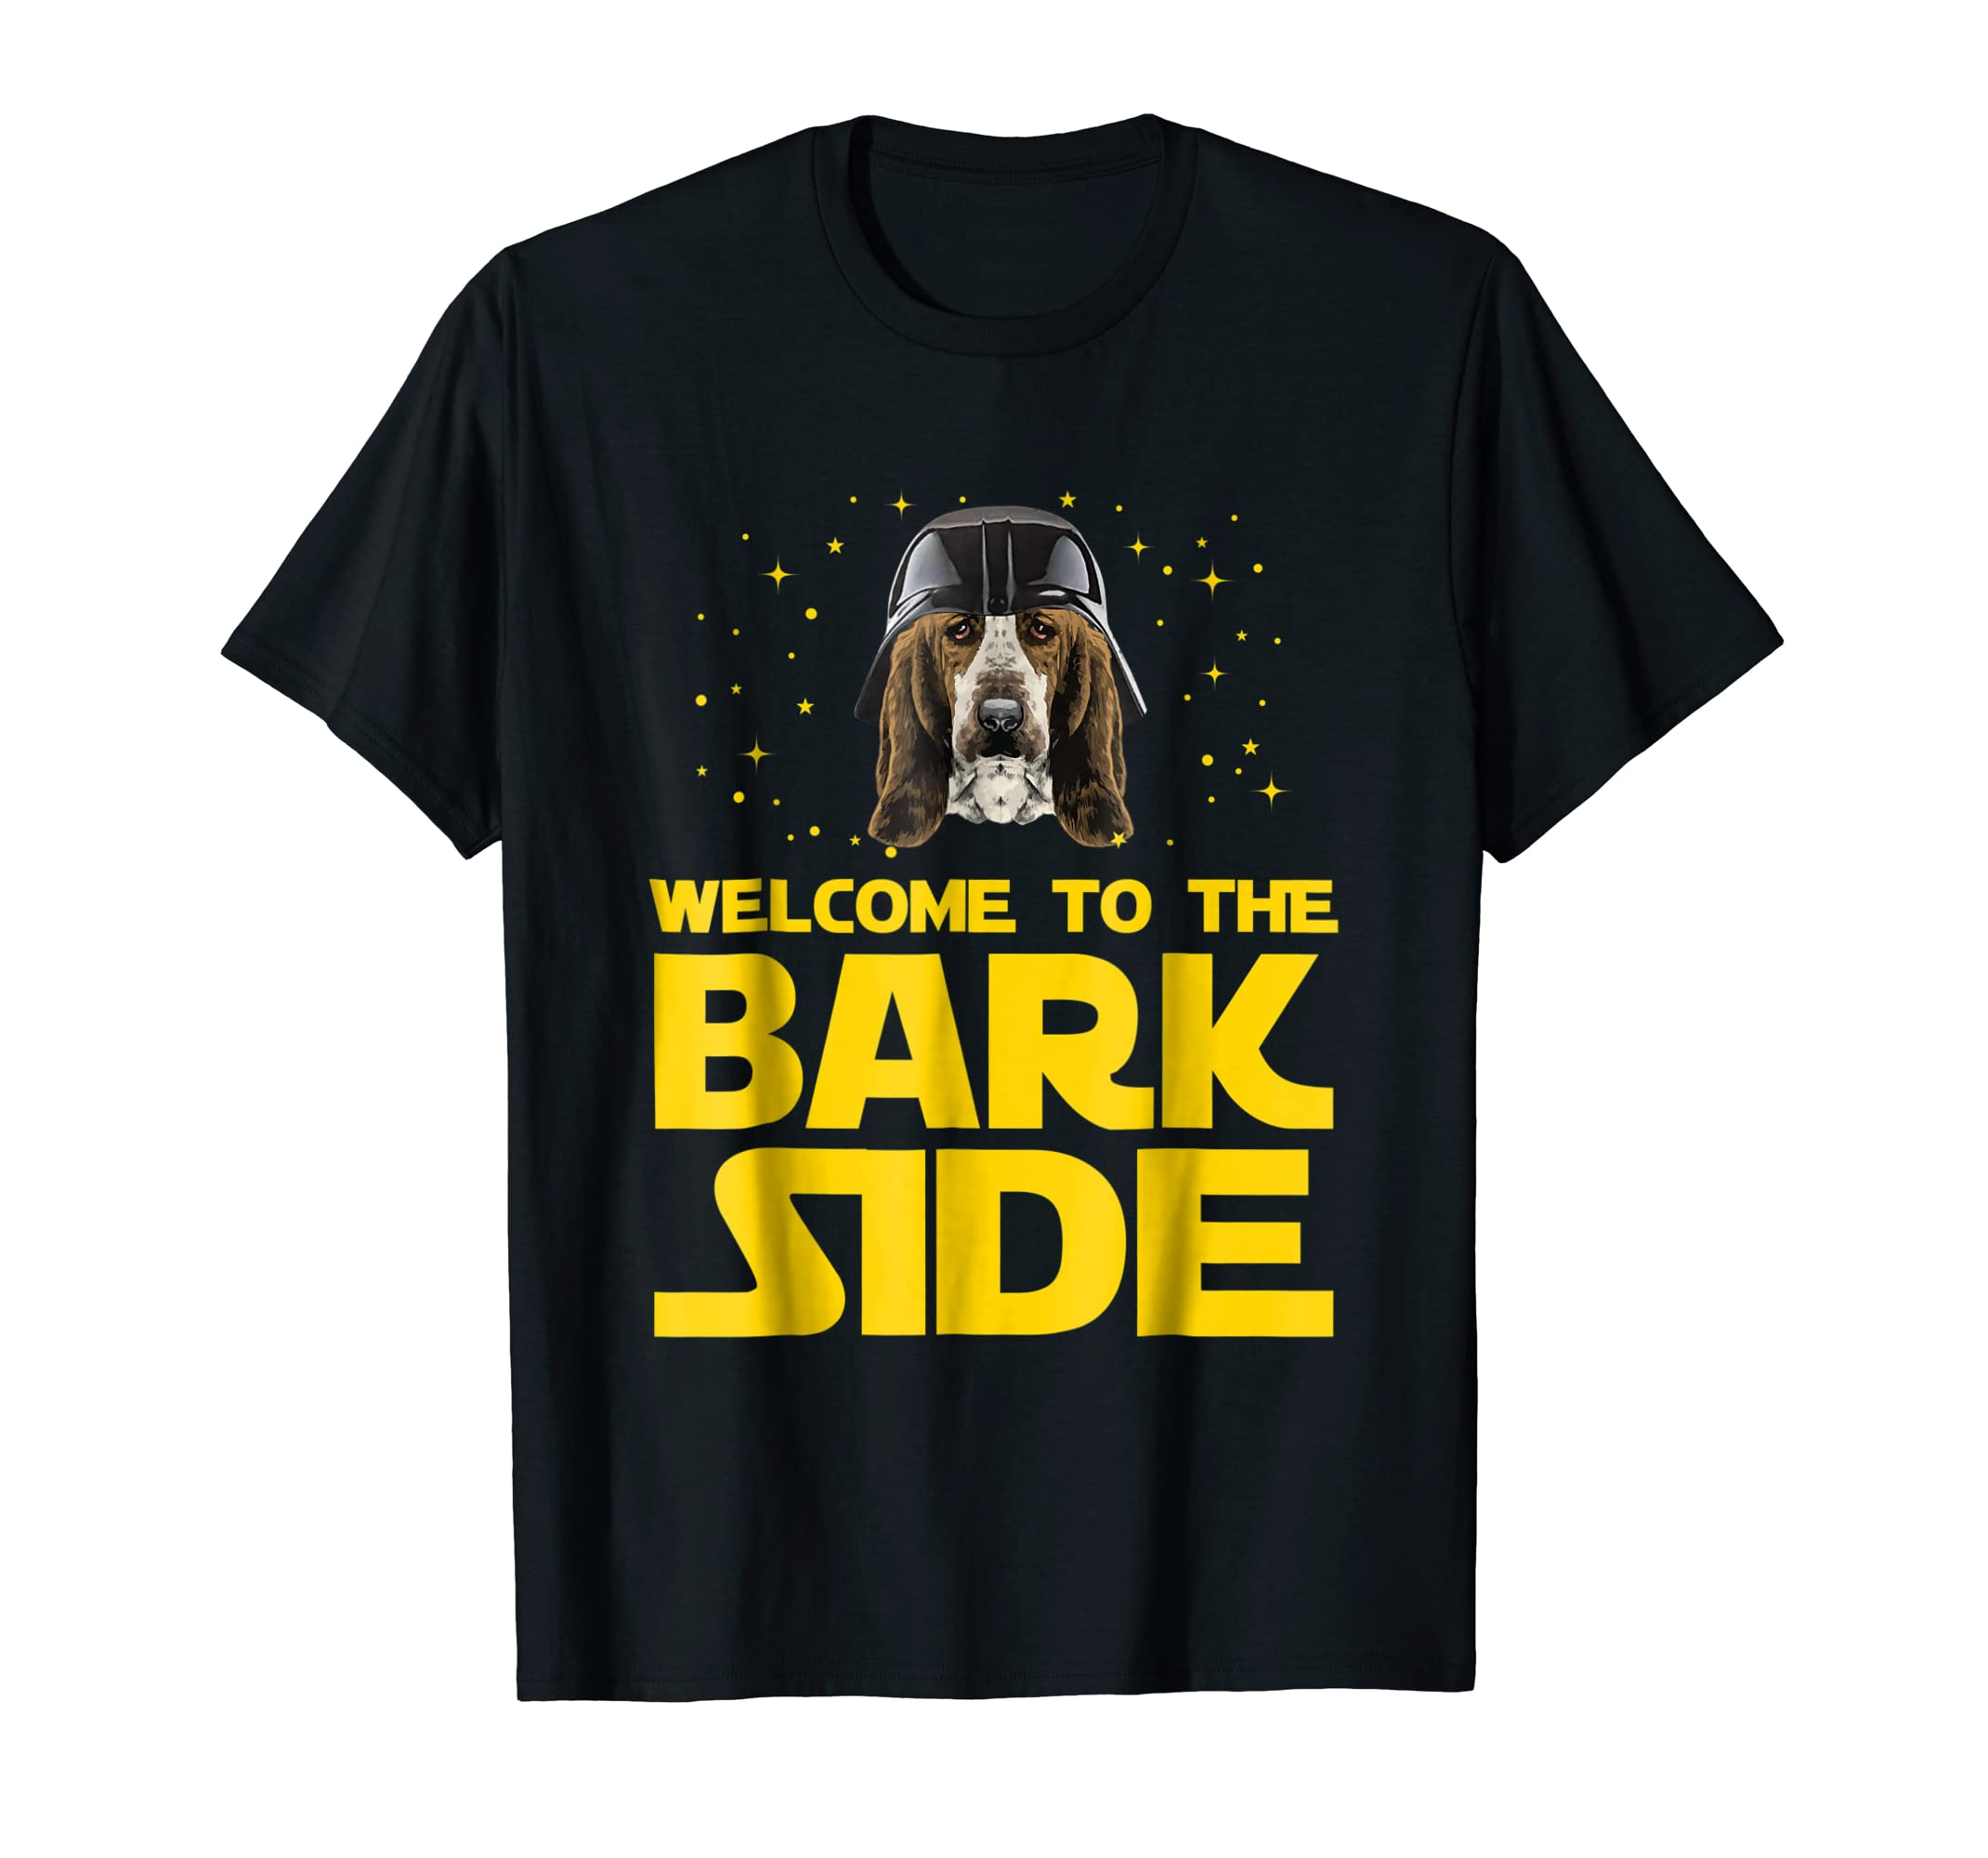 Welcome to the Bark Side of Basset Hound Funny T shirt Gifts-Men's T-Shirt-Black